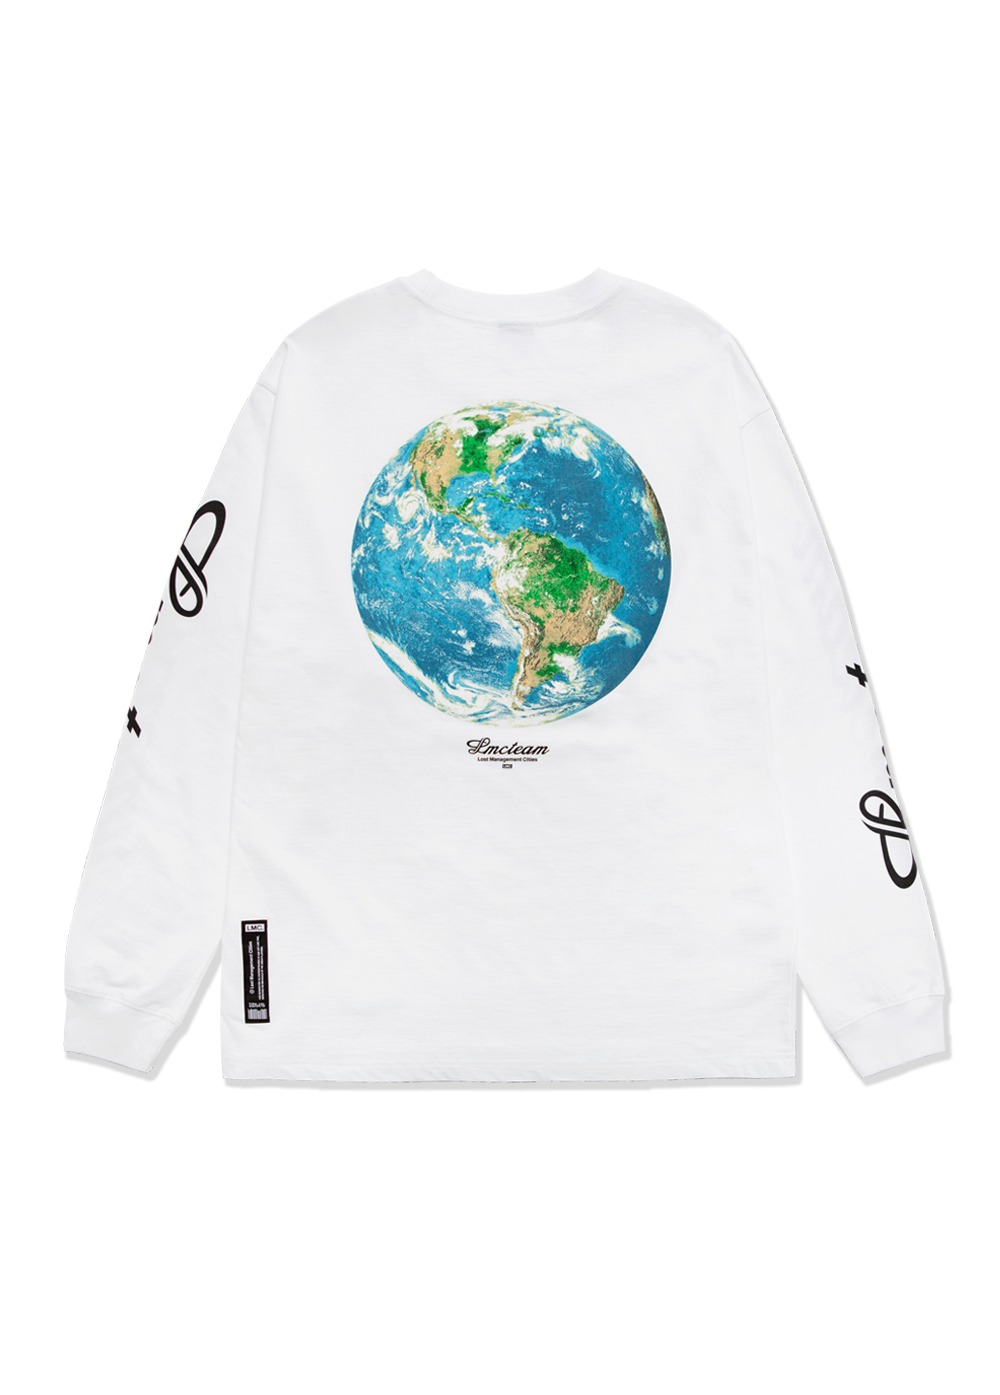 LMC TEAM EARTH LONG SLV TEE white